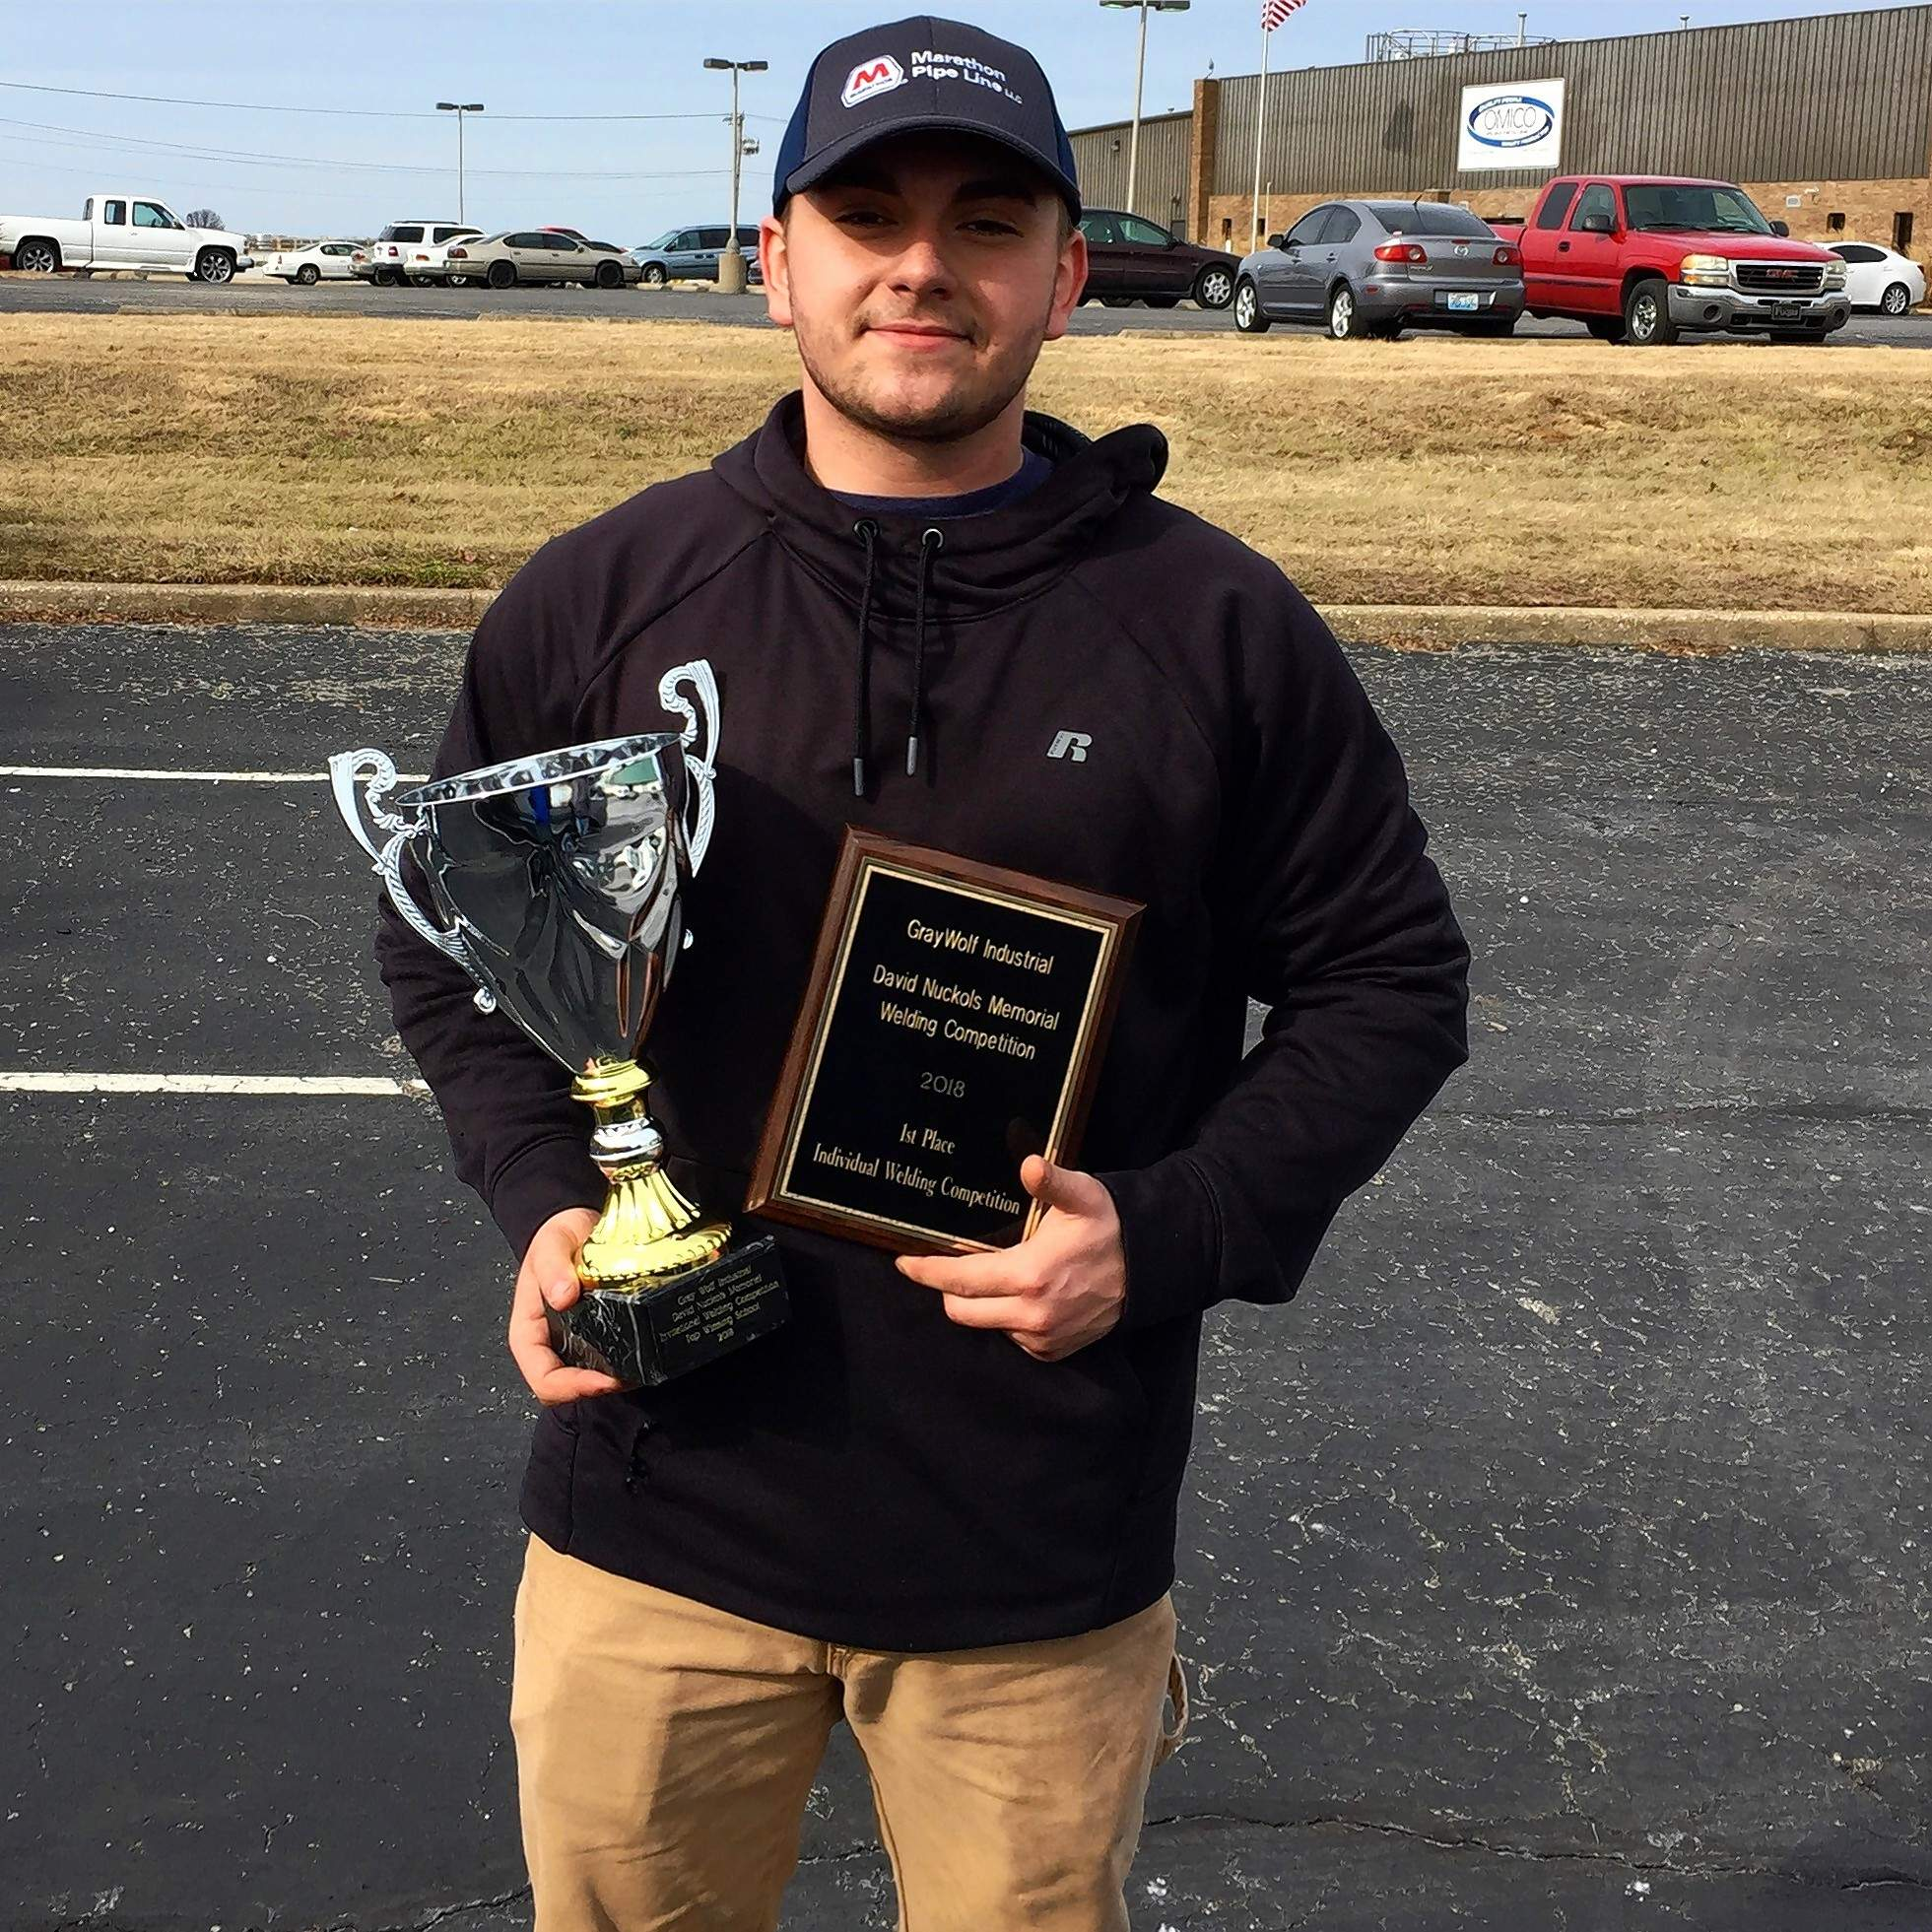 SIC welding student Pace Young of Enfield won overall welder in the competition in Owensboro, Ky.